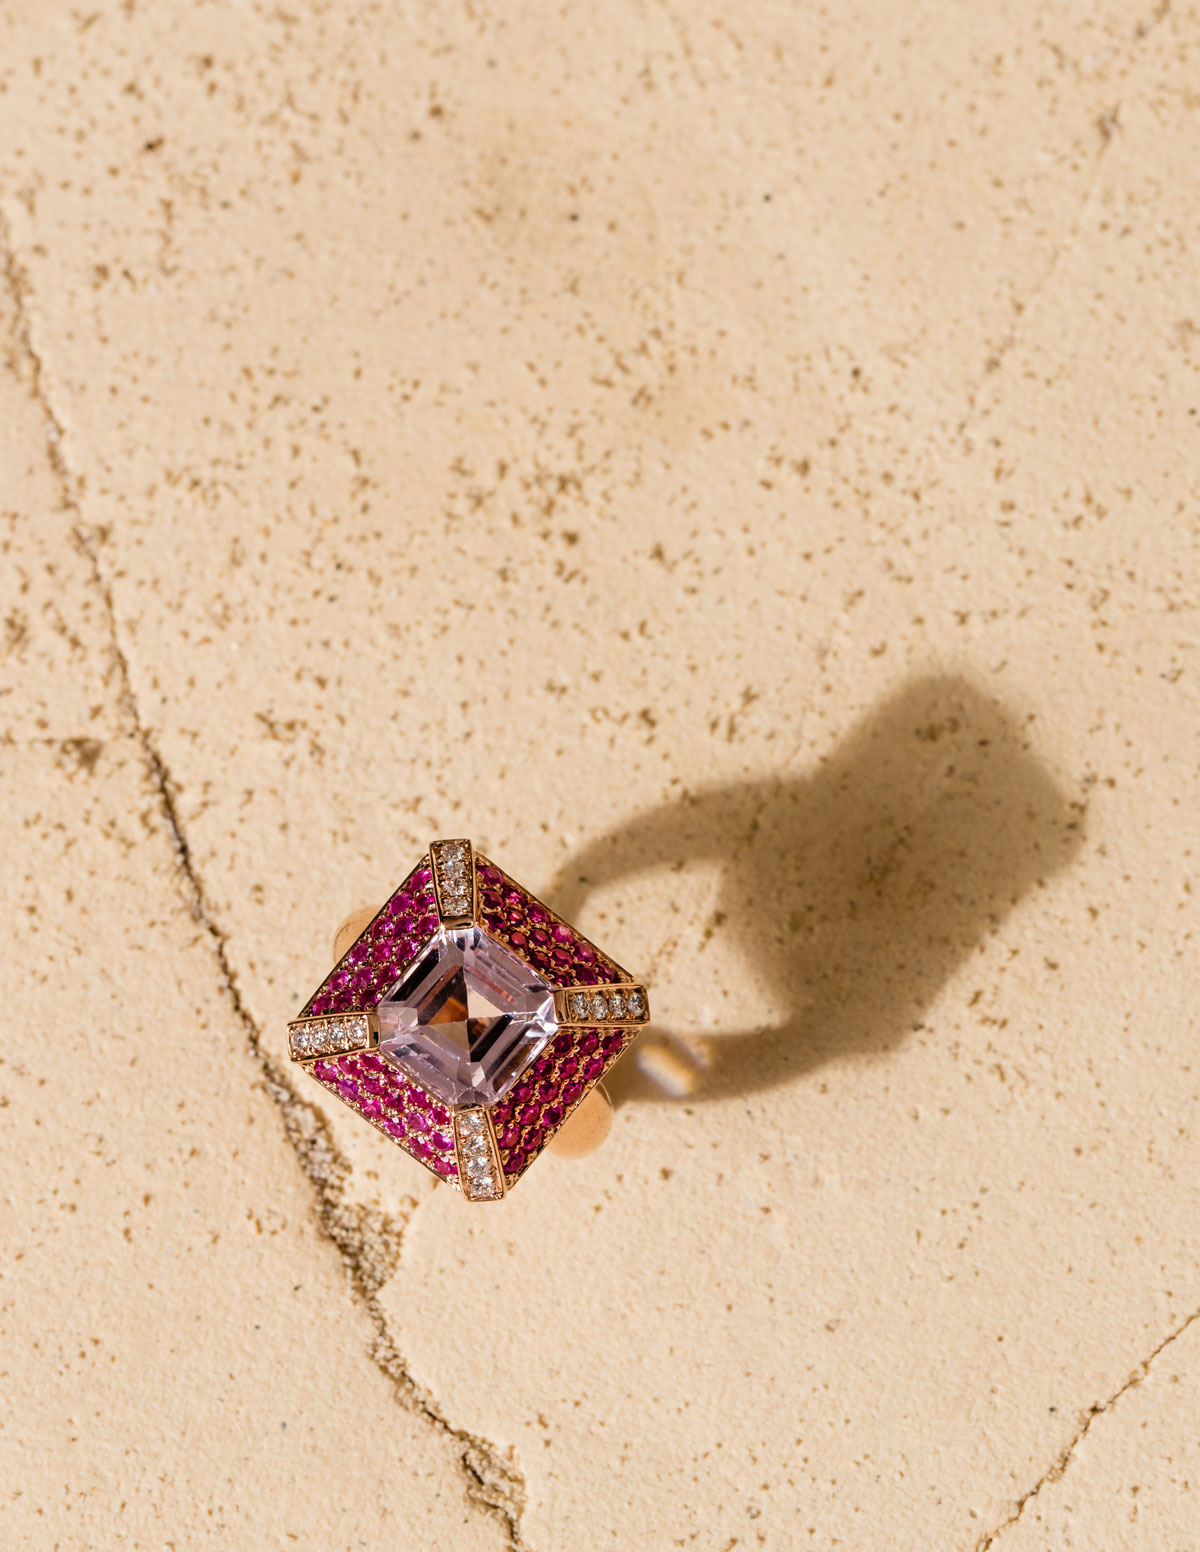 webPaul-Syjuco-ring-of-kunzite-rubies-and-diamonds-in-rose-gold